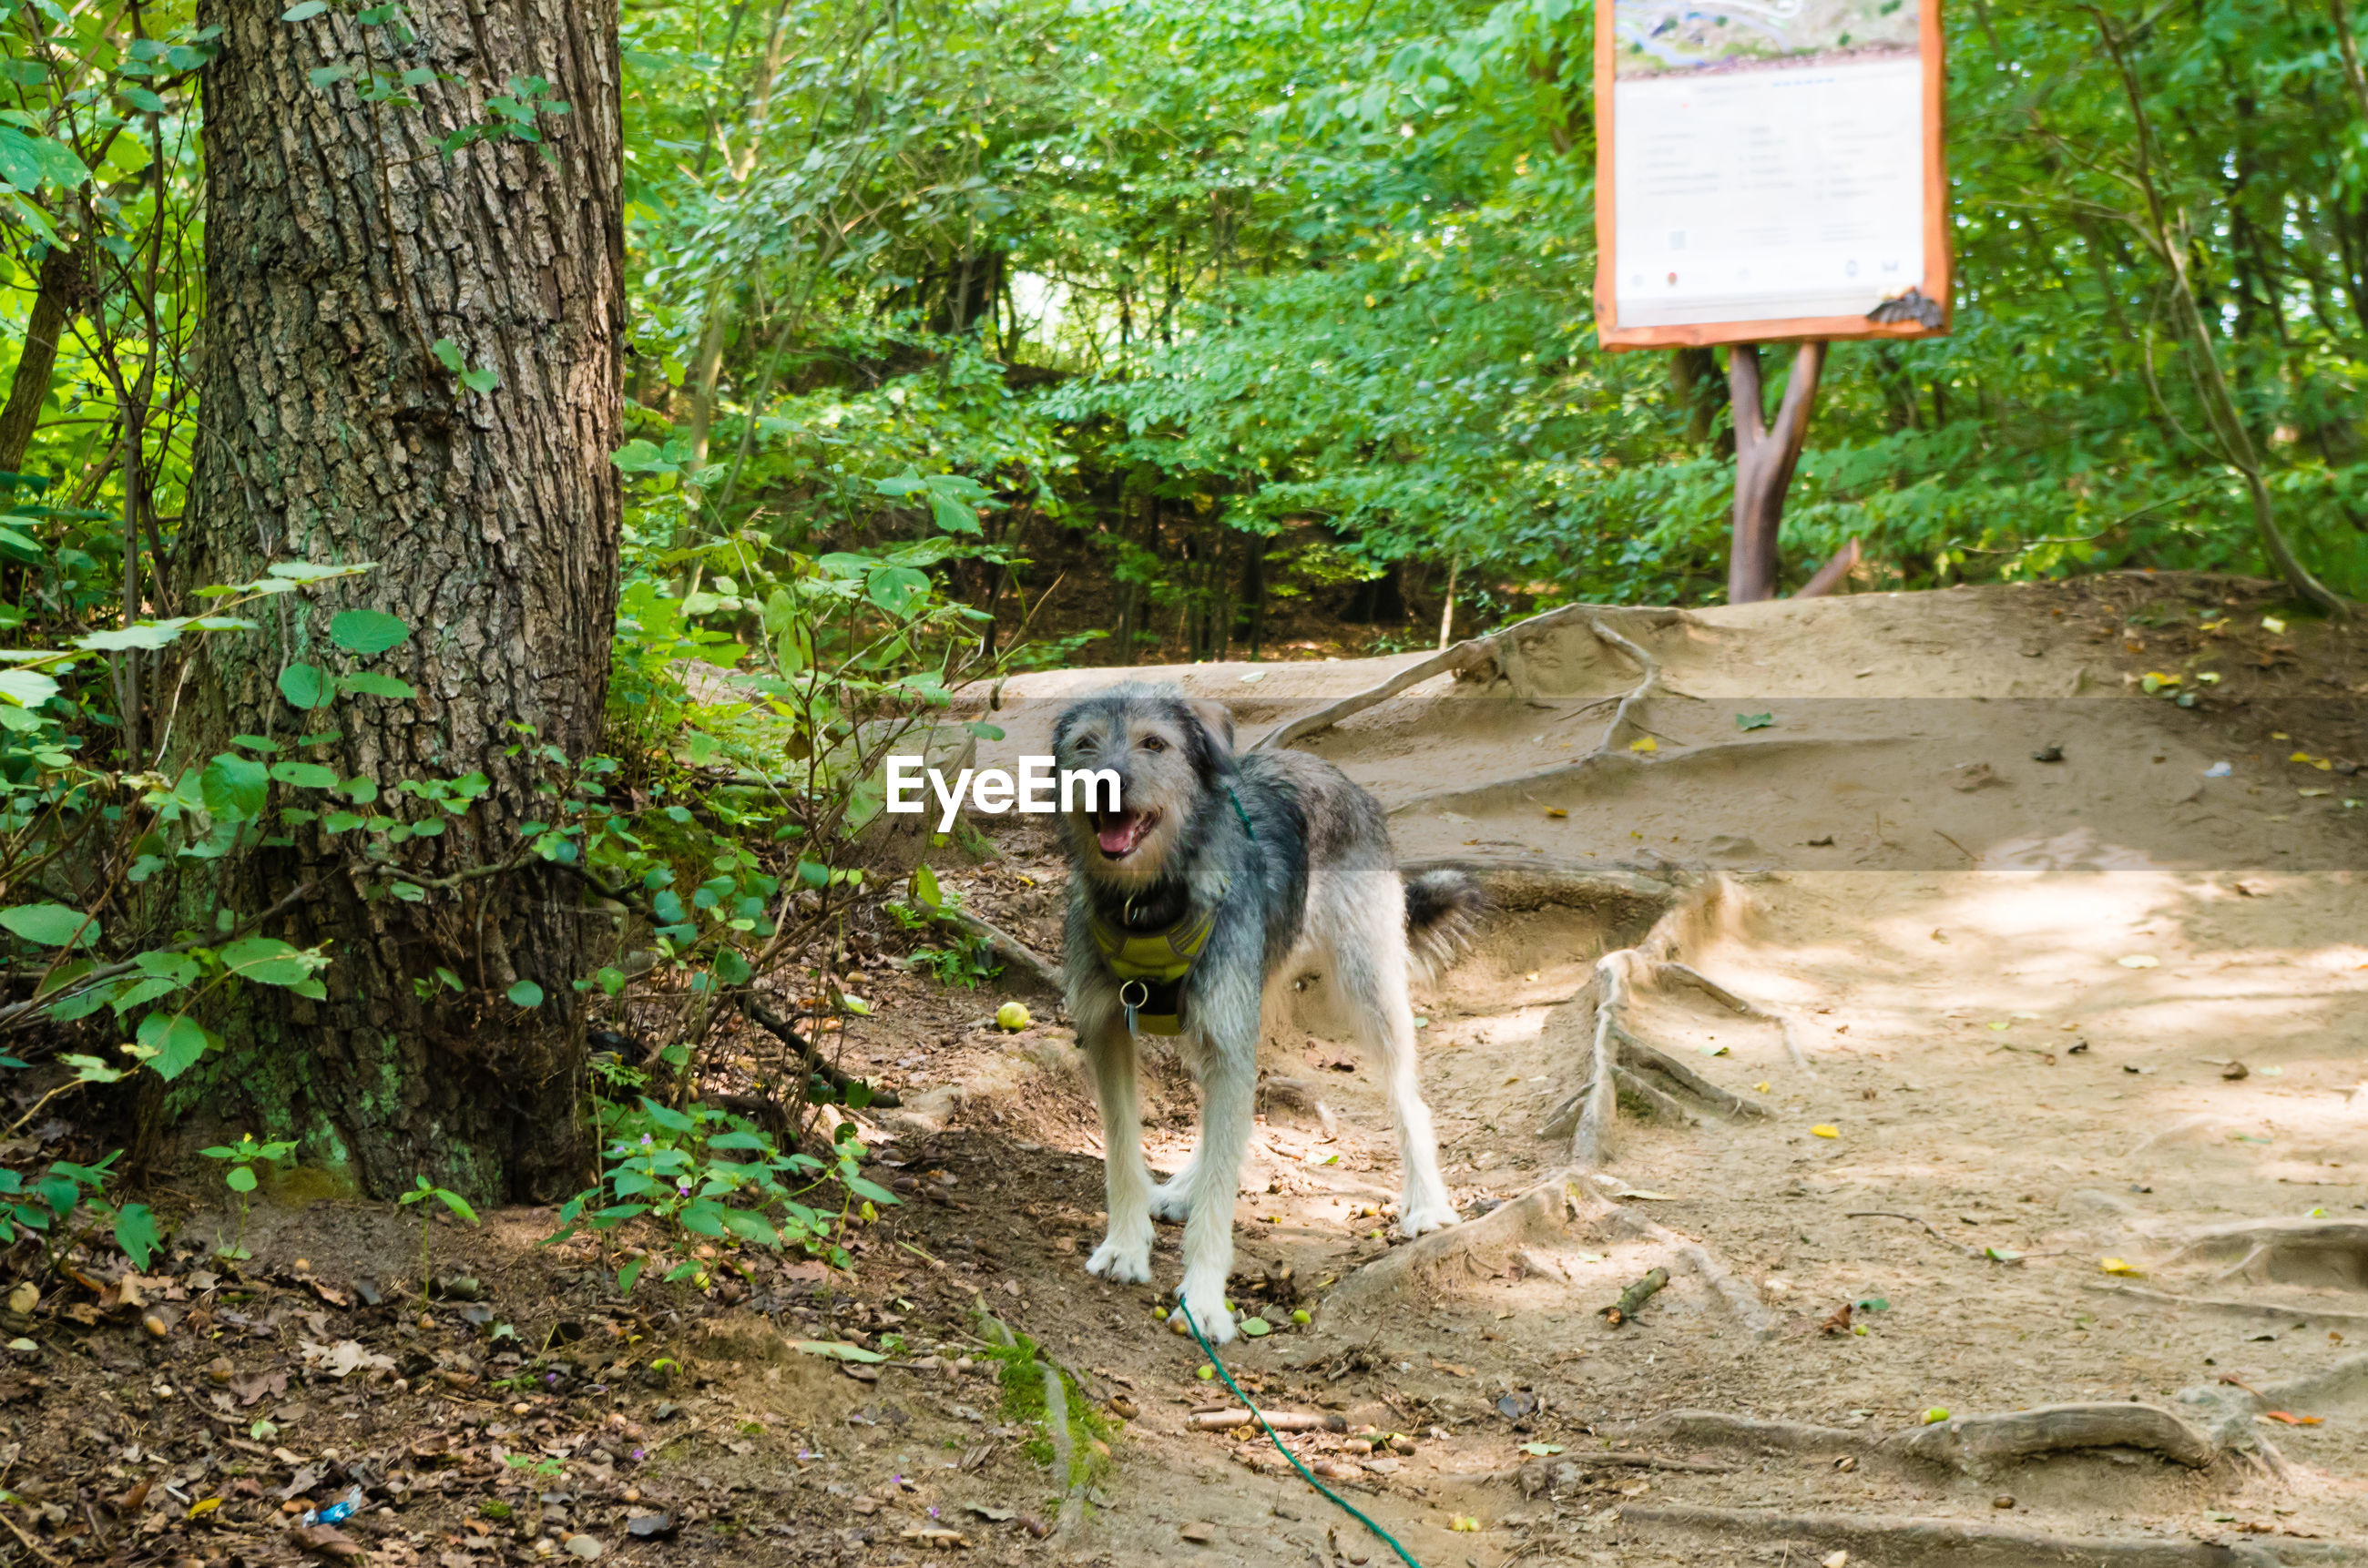 Portrait of dog by tree trunk in forest